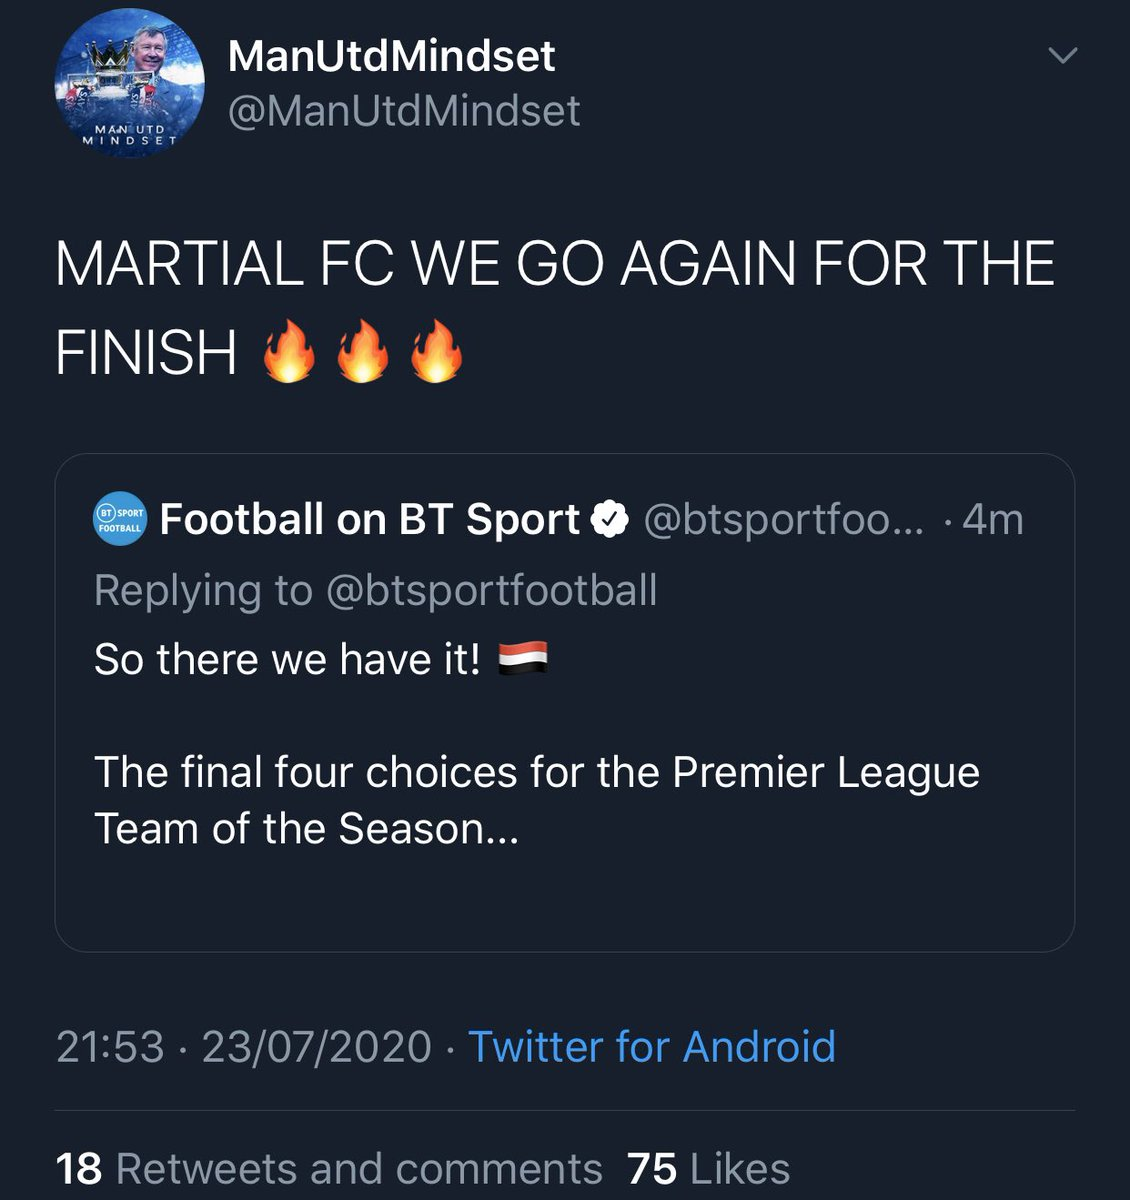 BT Sport seeing @ManUtdMindset interfering with yet another vote... https://t.co/6GfMrEz7Bl